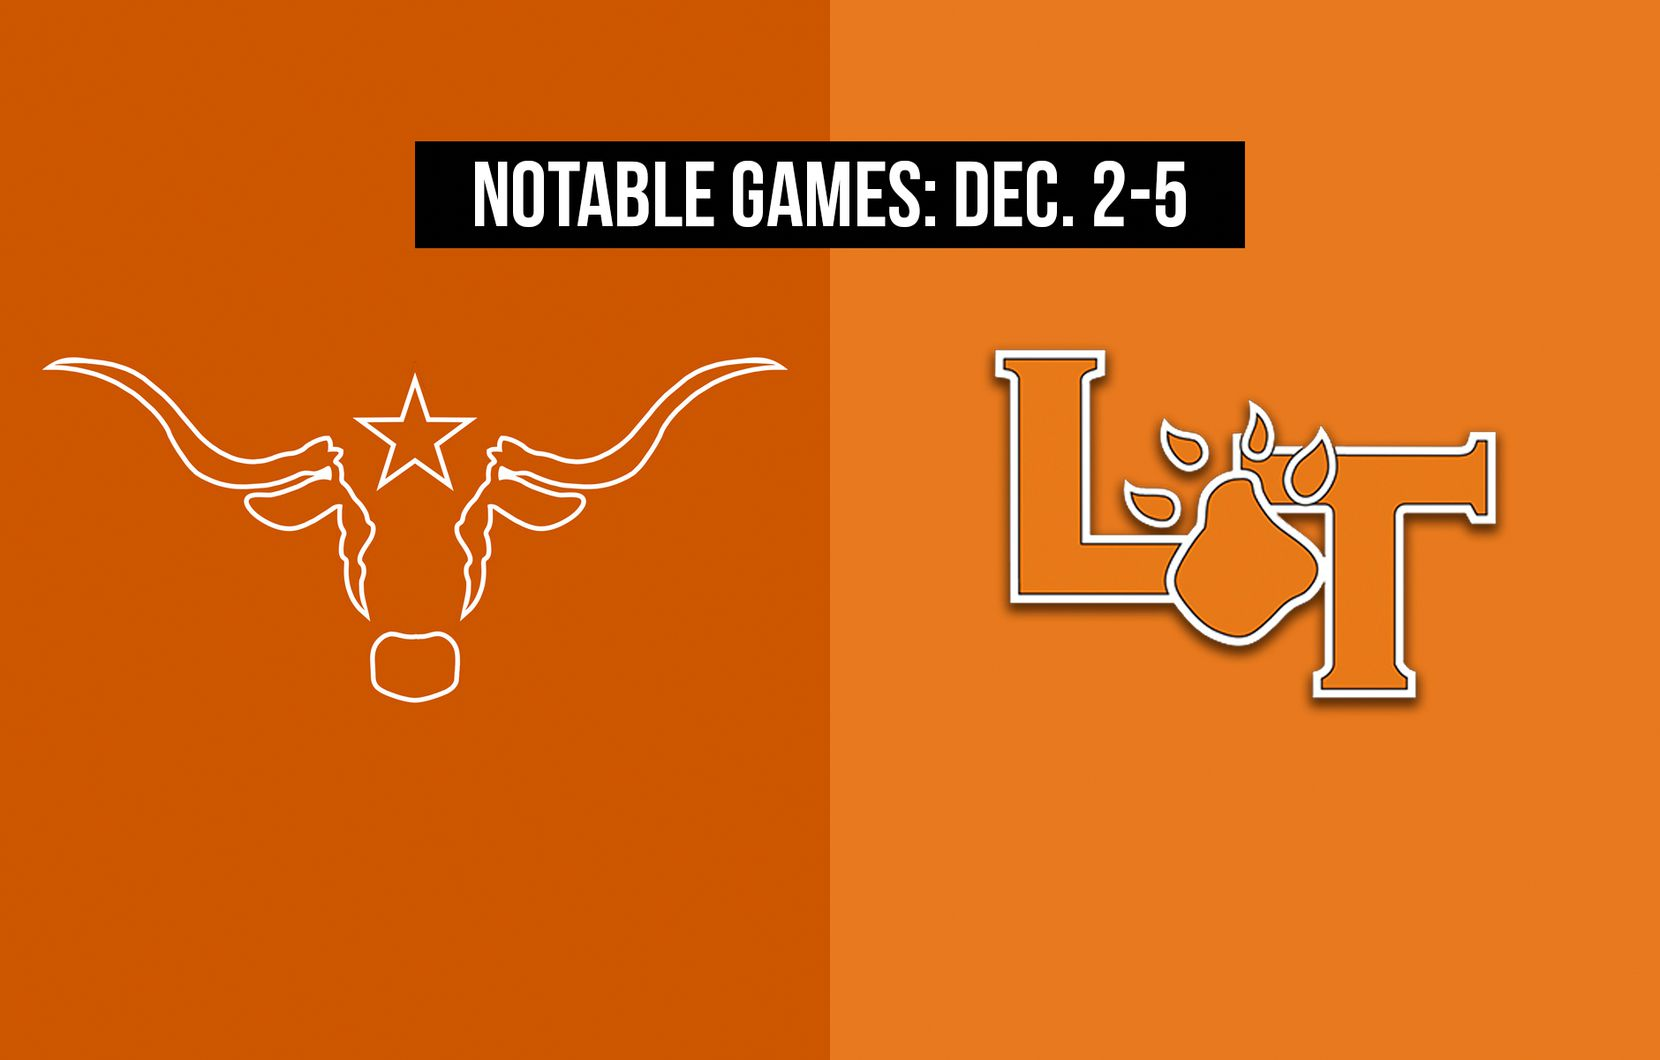 Notable games for the week of Dec. 2-5 of the 2020 season: W.T. White vs. Lancaster.